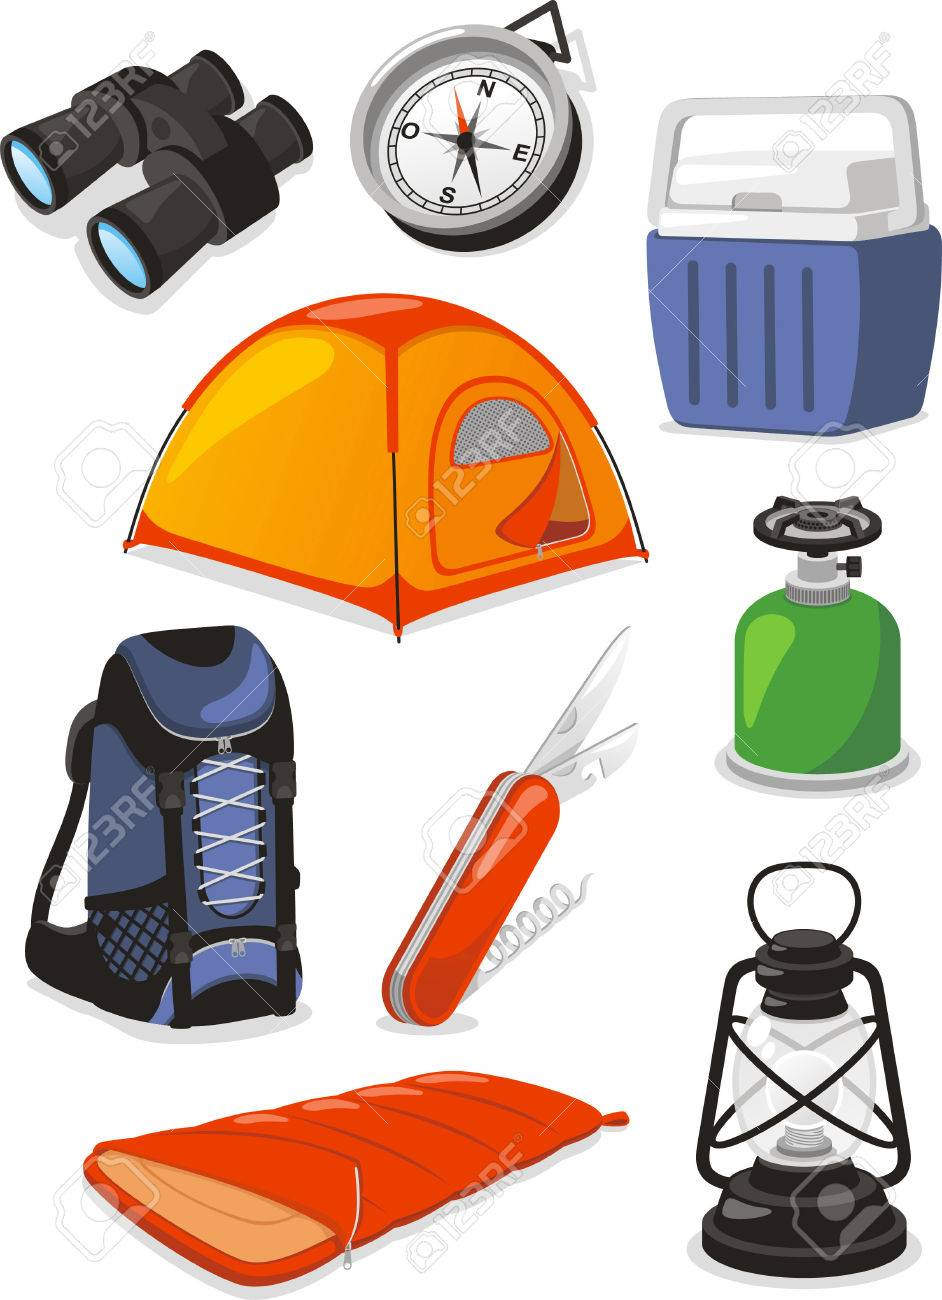 Camping Outdoors Icons, with swiss army knife, knife, cooler,